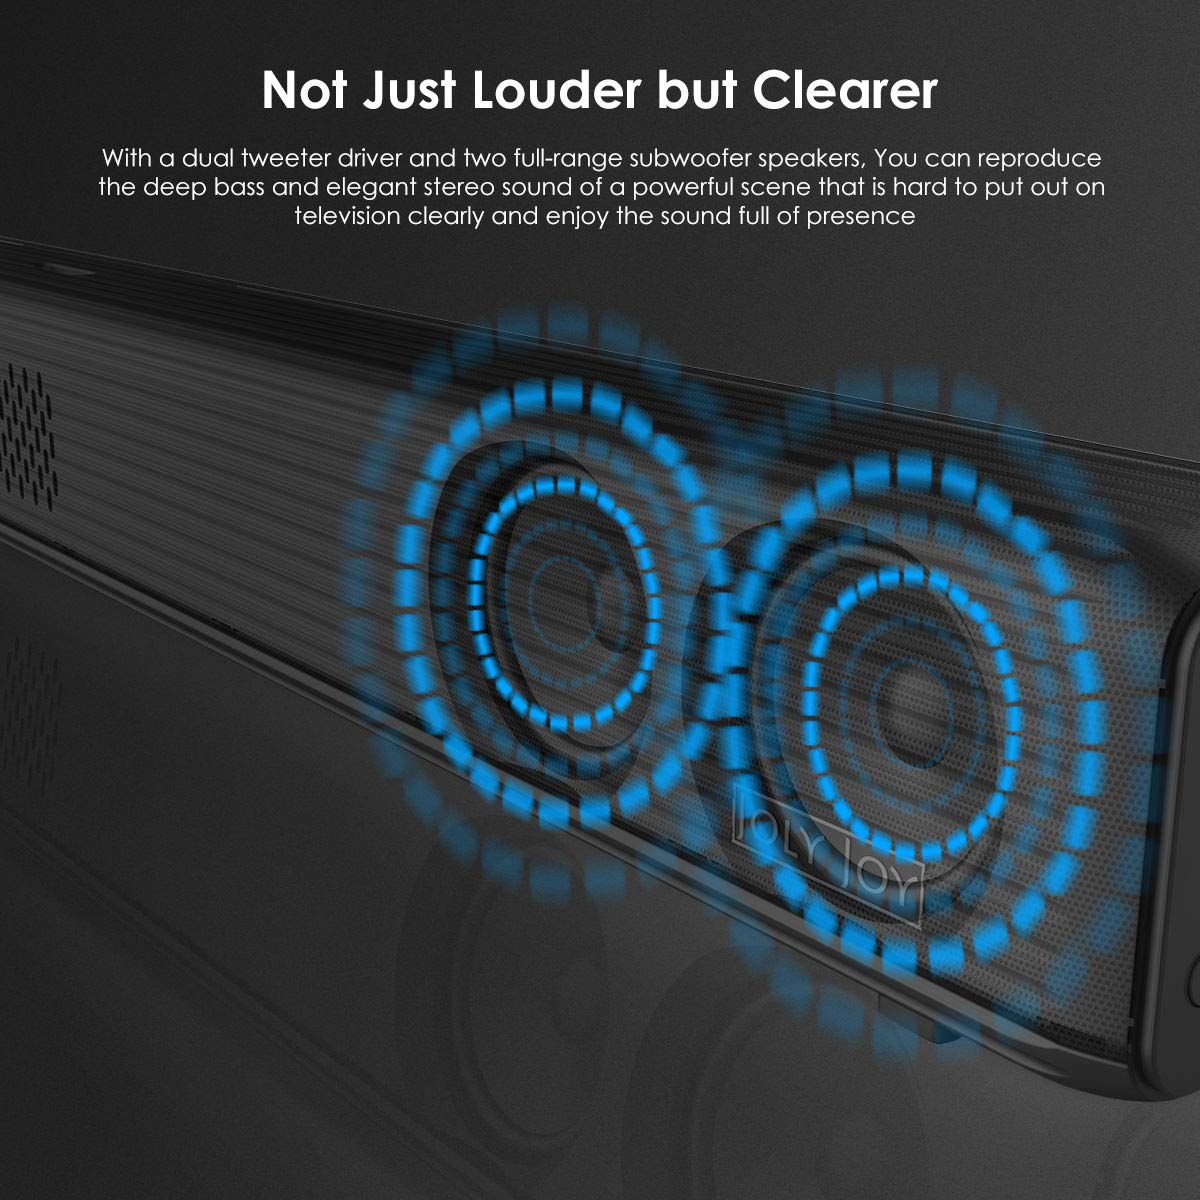 Sound Bars for TV, Joly Joy 90W TV Sound Bar Wireless Audio Speaker and Wired Home Theater Speaker System (Bluetooth 2.1-Channel, Remote Control, Wall Mountable)